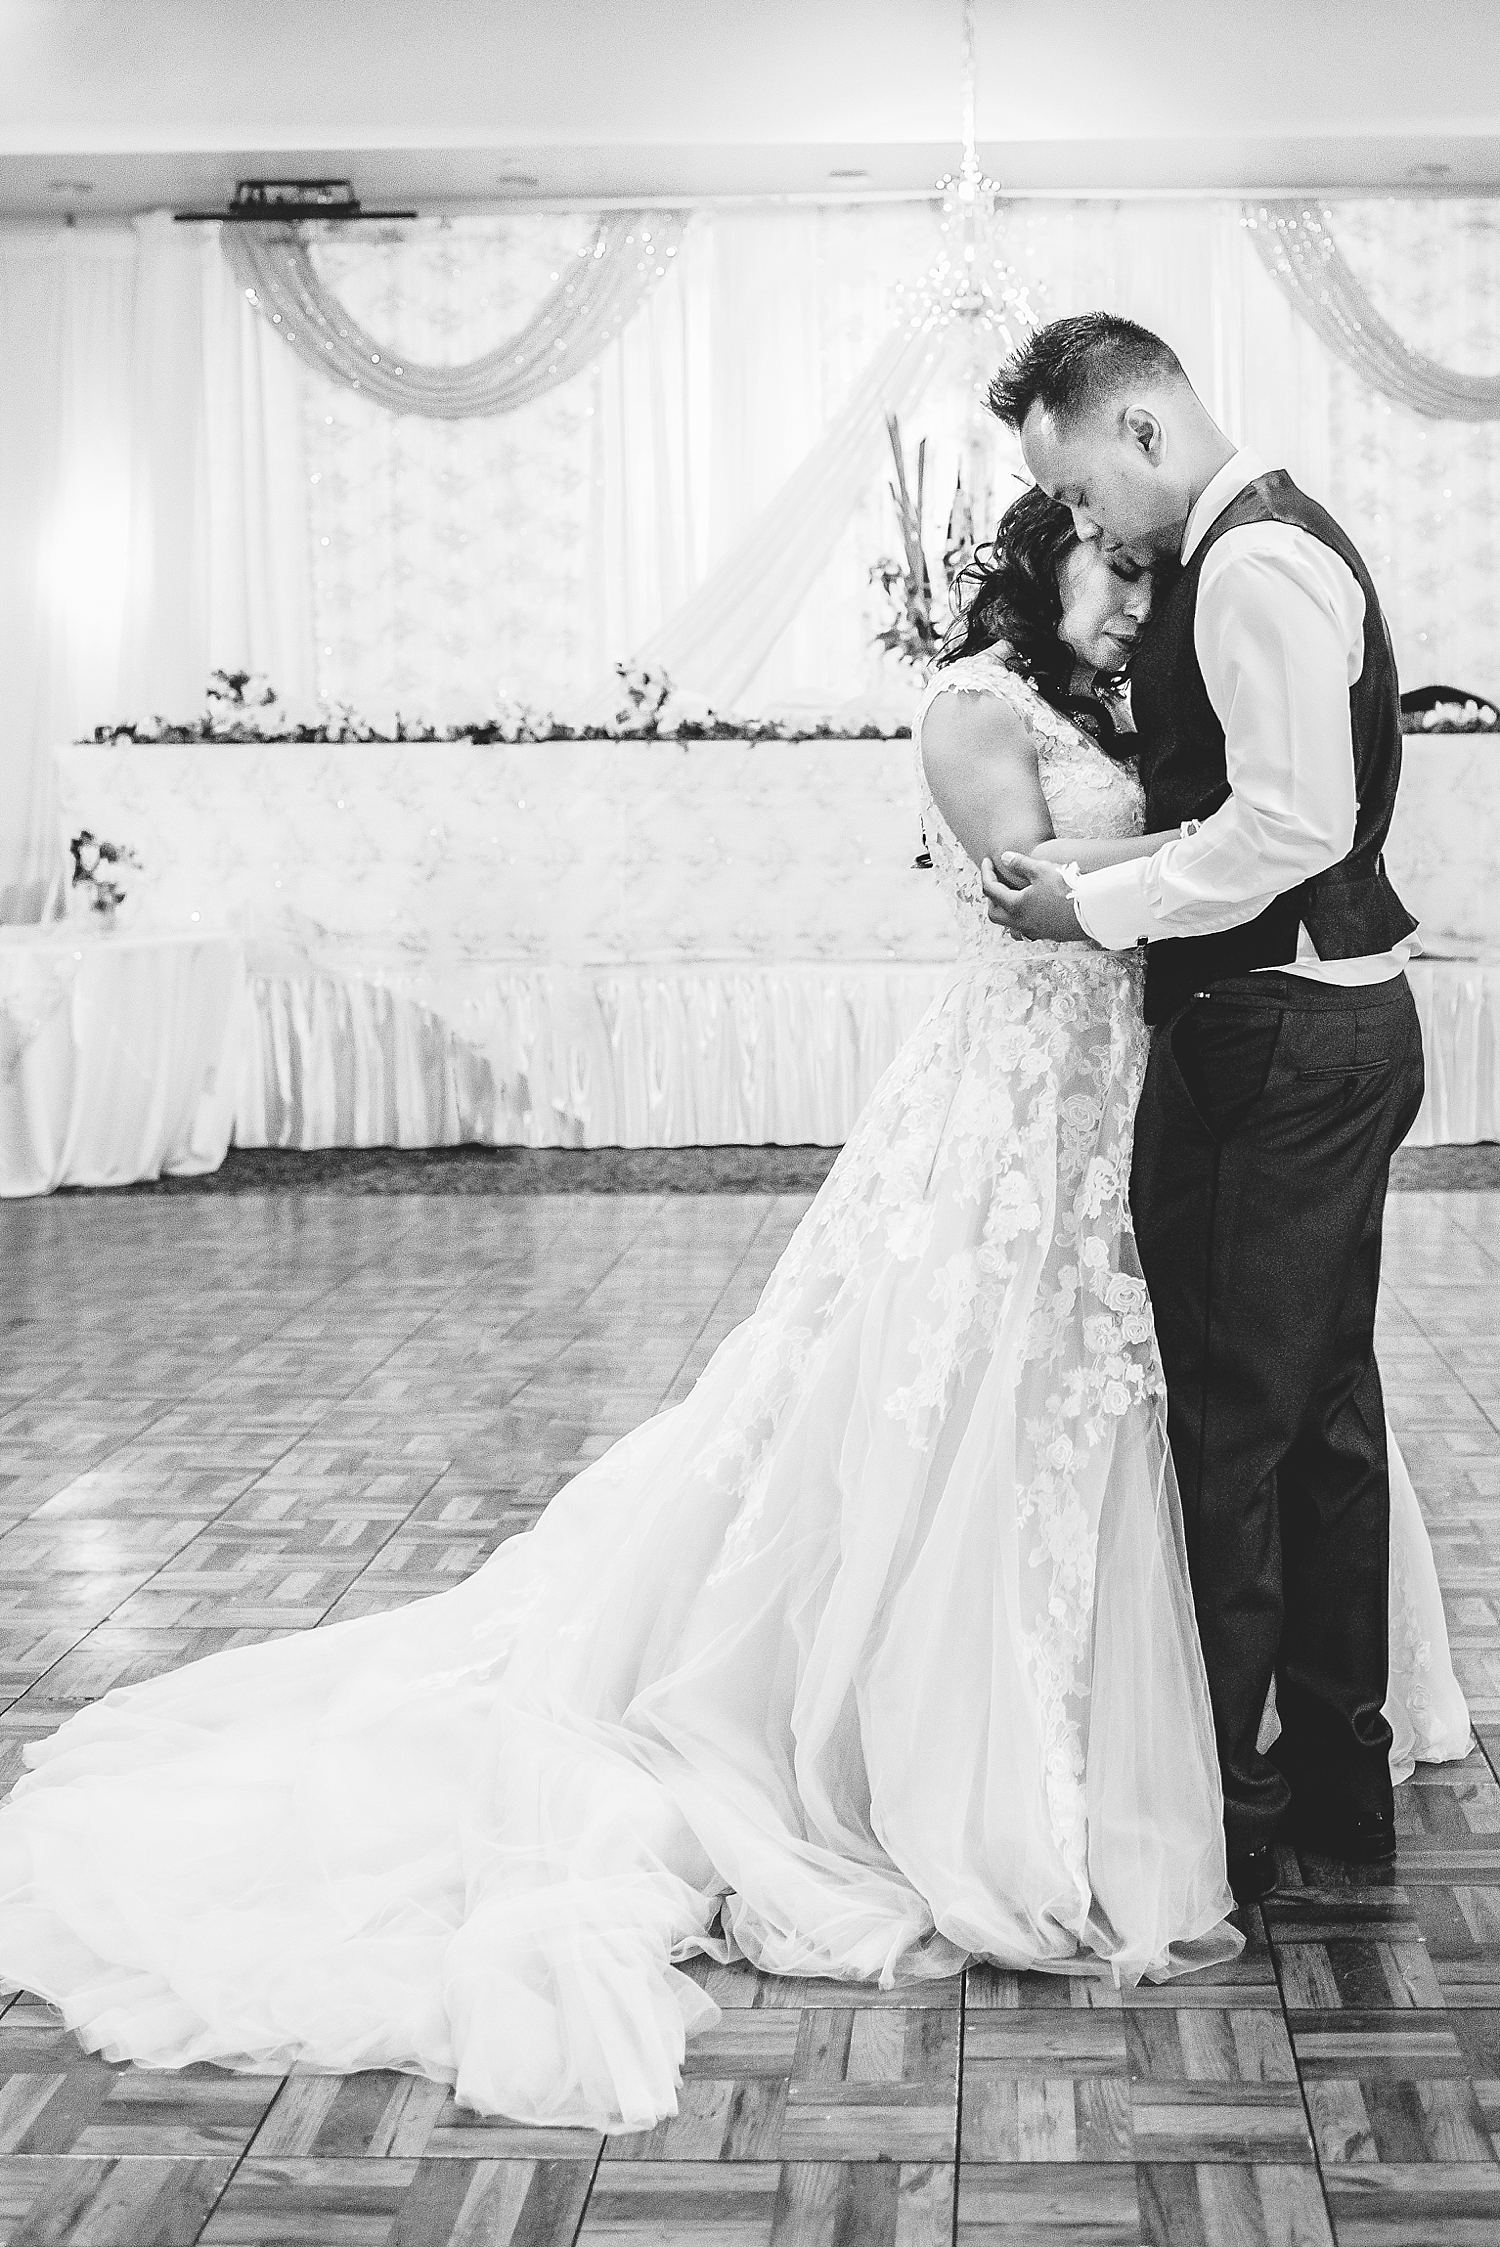 Hom and Van's Cambodian and Laotian wedding at American Royal Palace in North Phoenix. Photographed by Jade Min of Jade Min Photography.